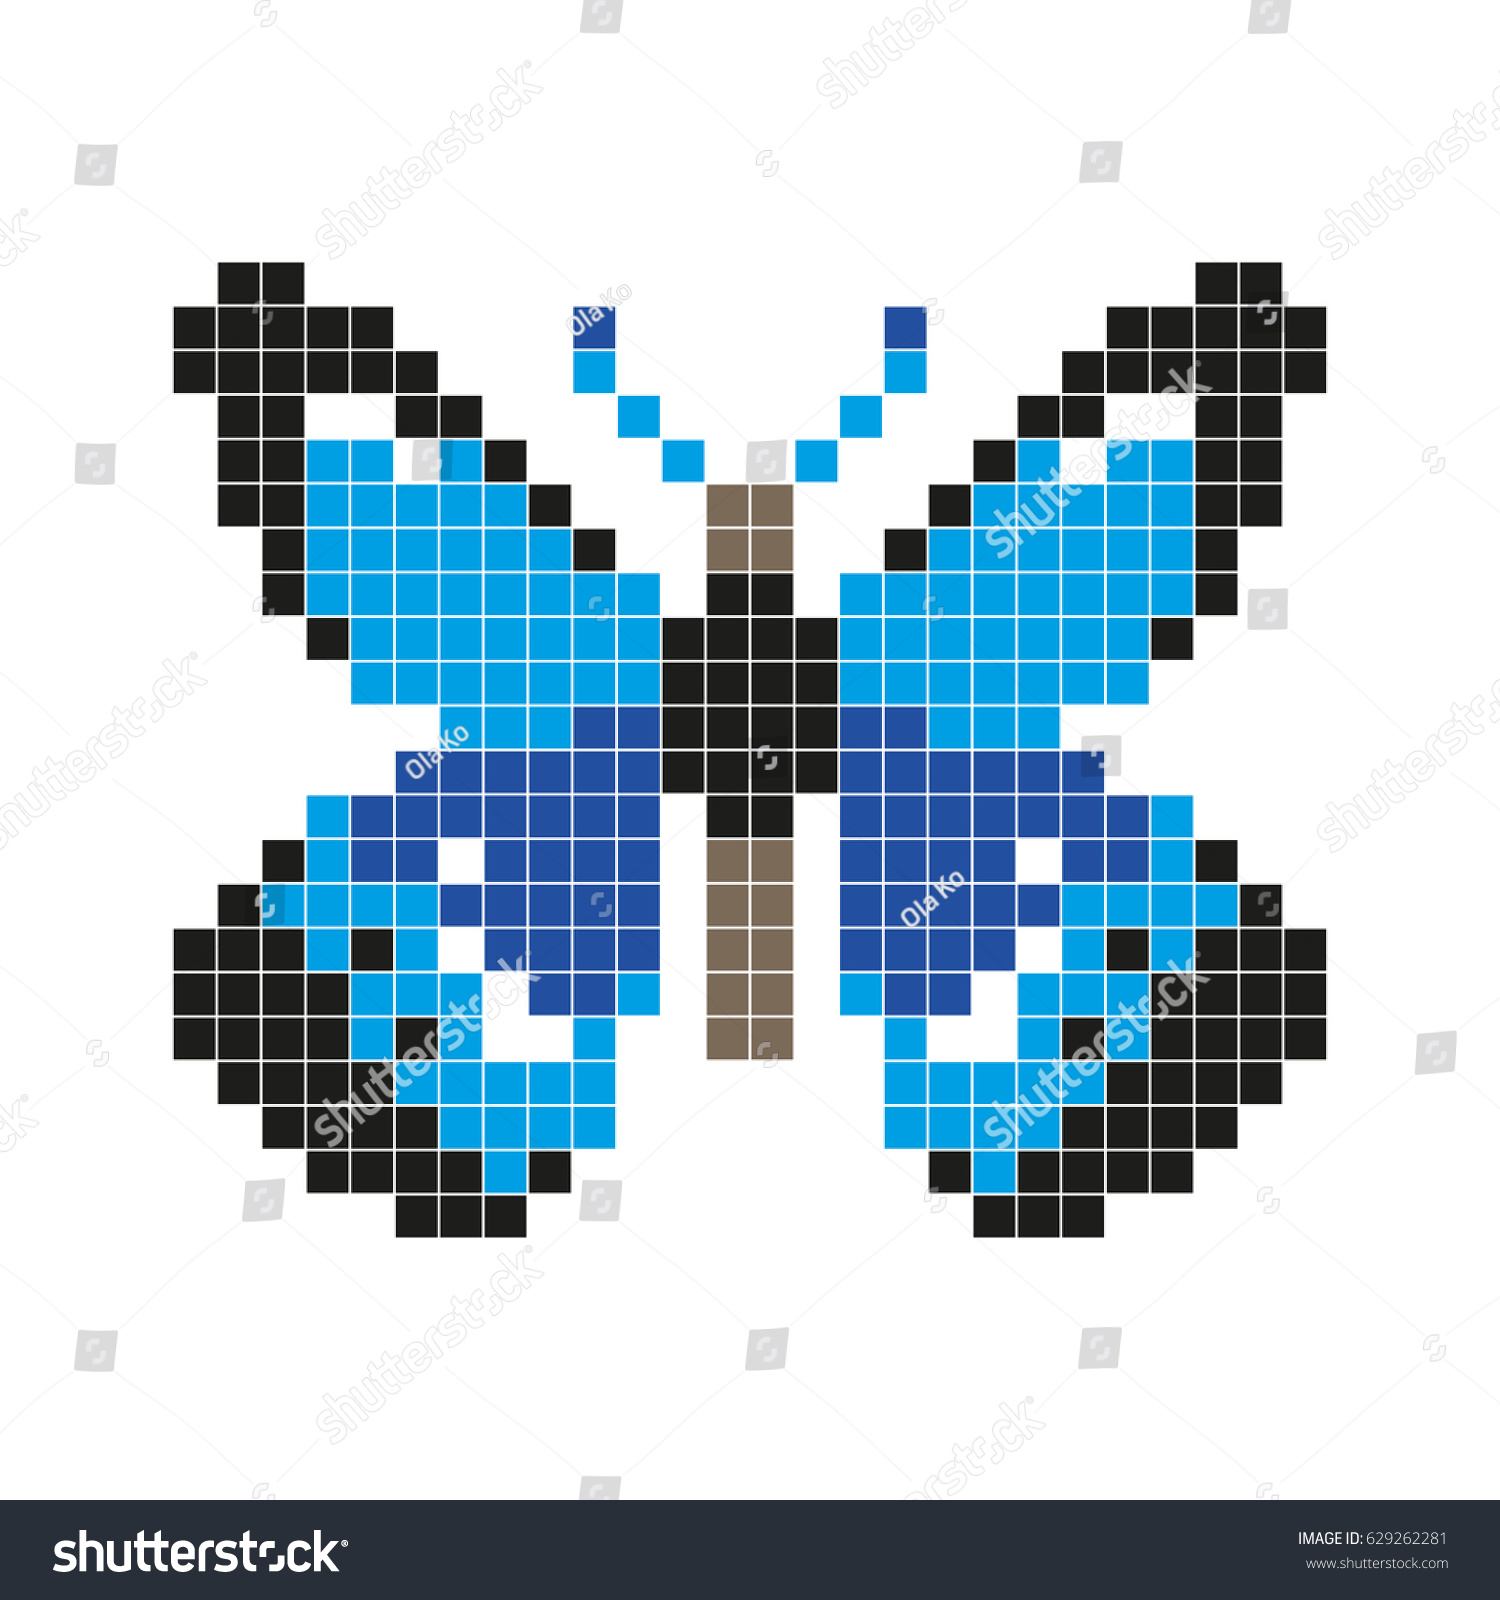 Blue Butterfly Pixel Art Style Vector Stock Vector (Royalty Free ...